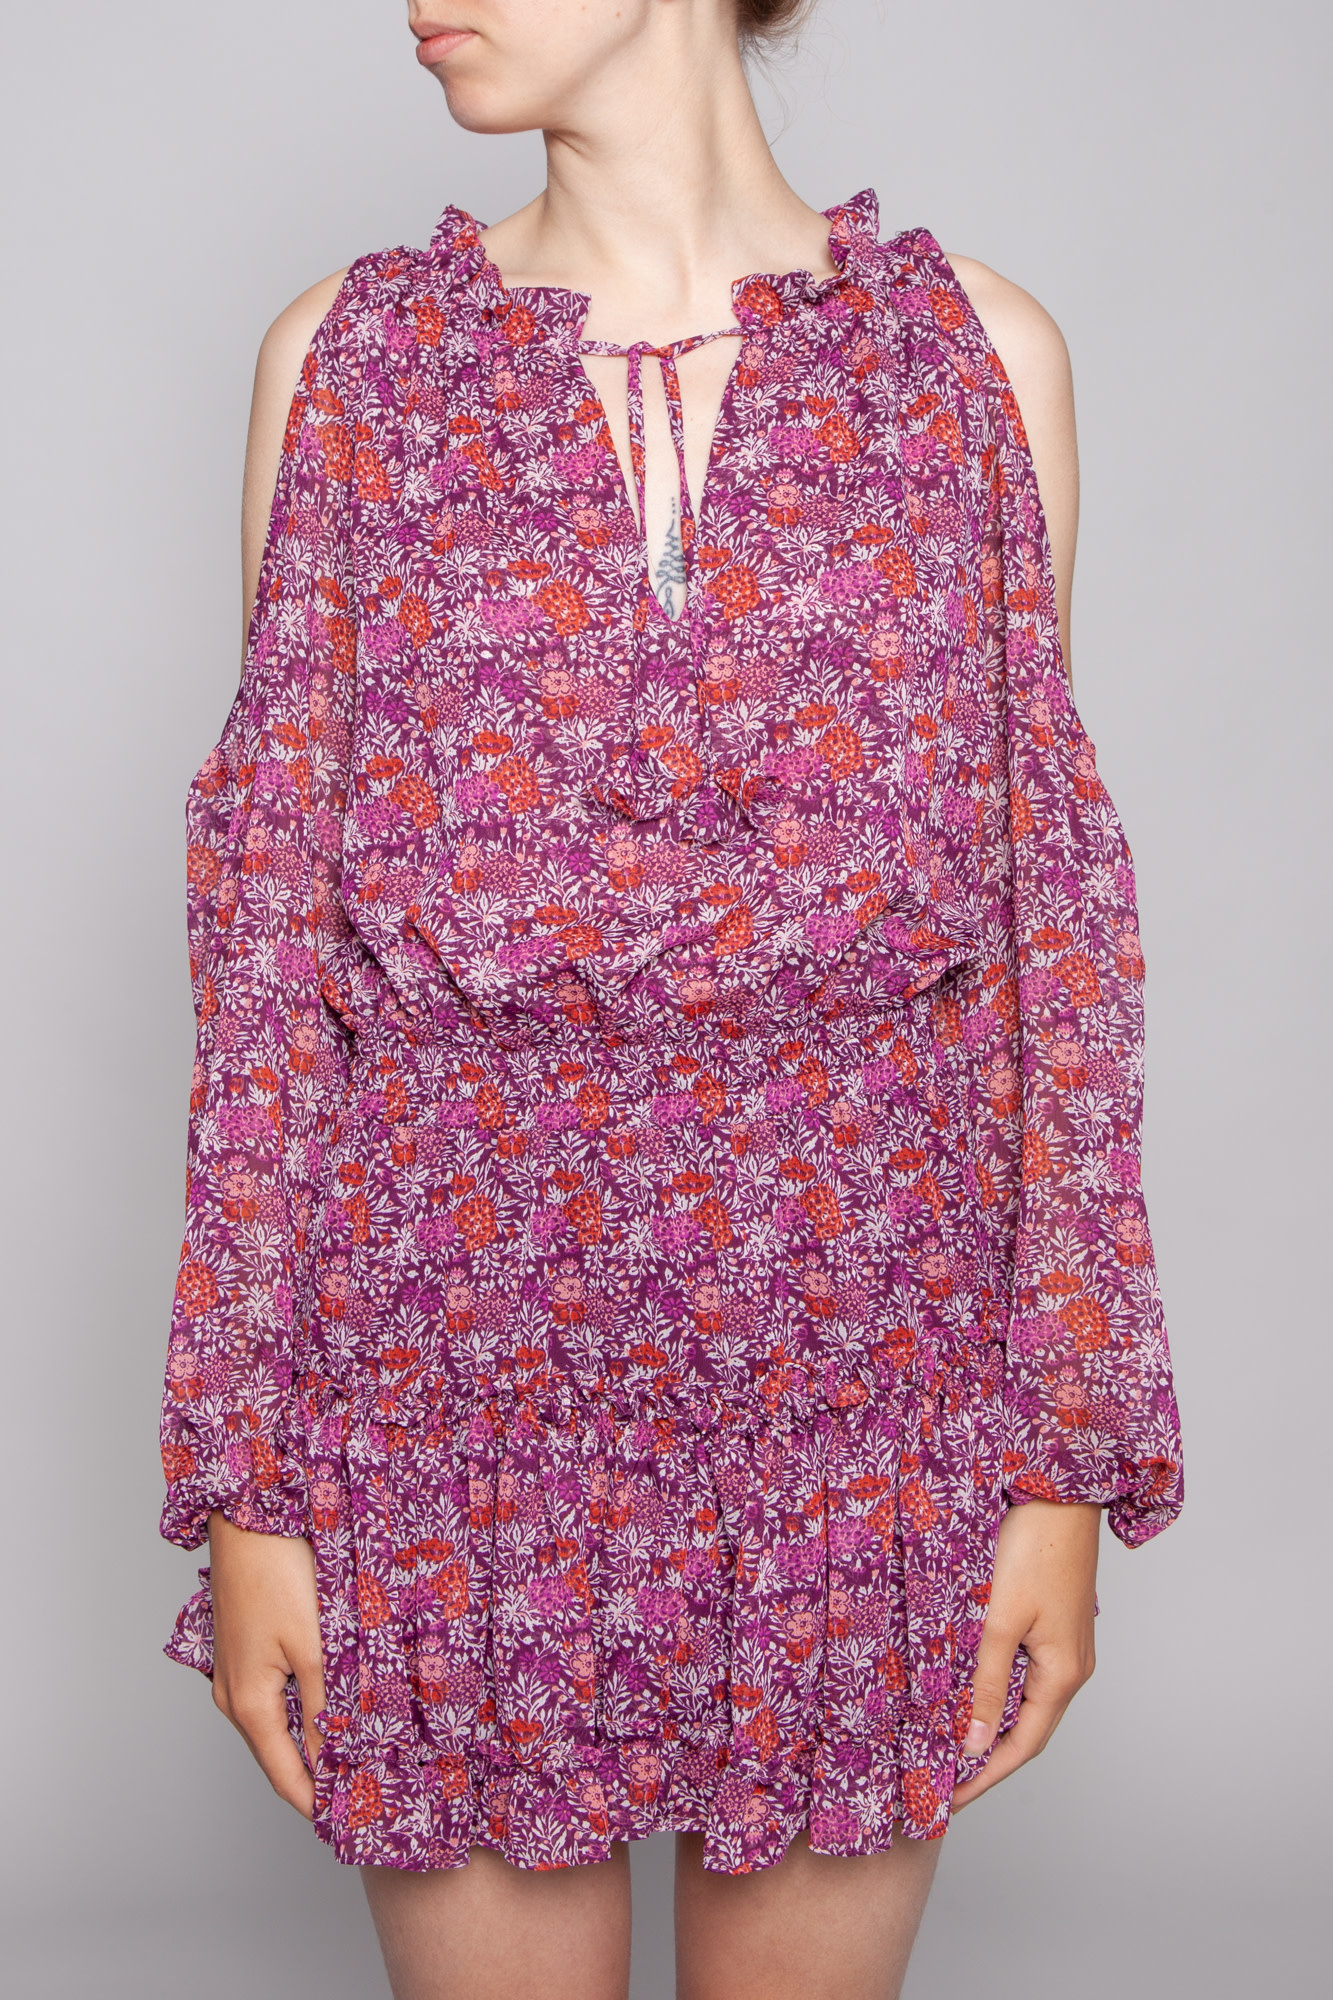 Misa FLORAL DRESS WITH OPEN SHOULDERS - NEW